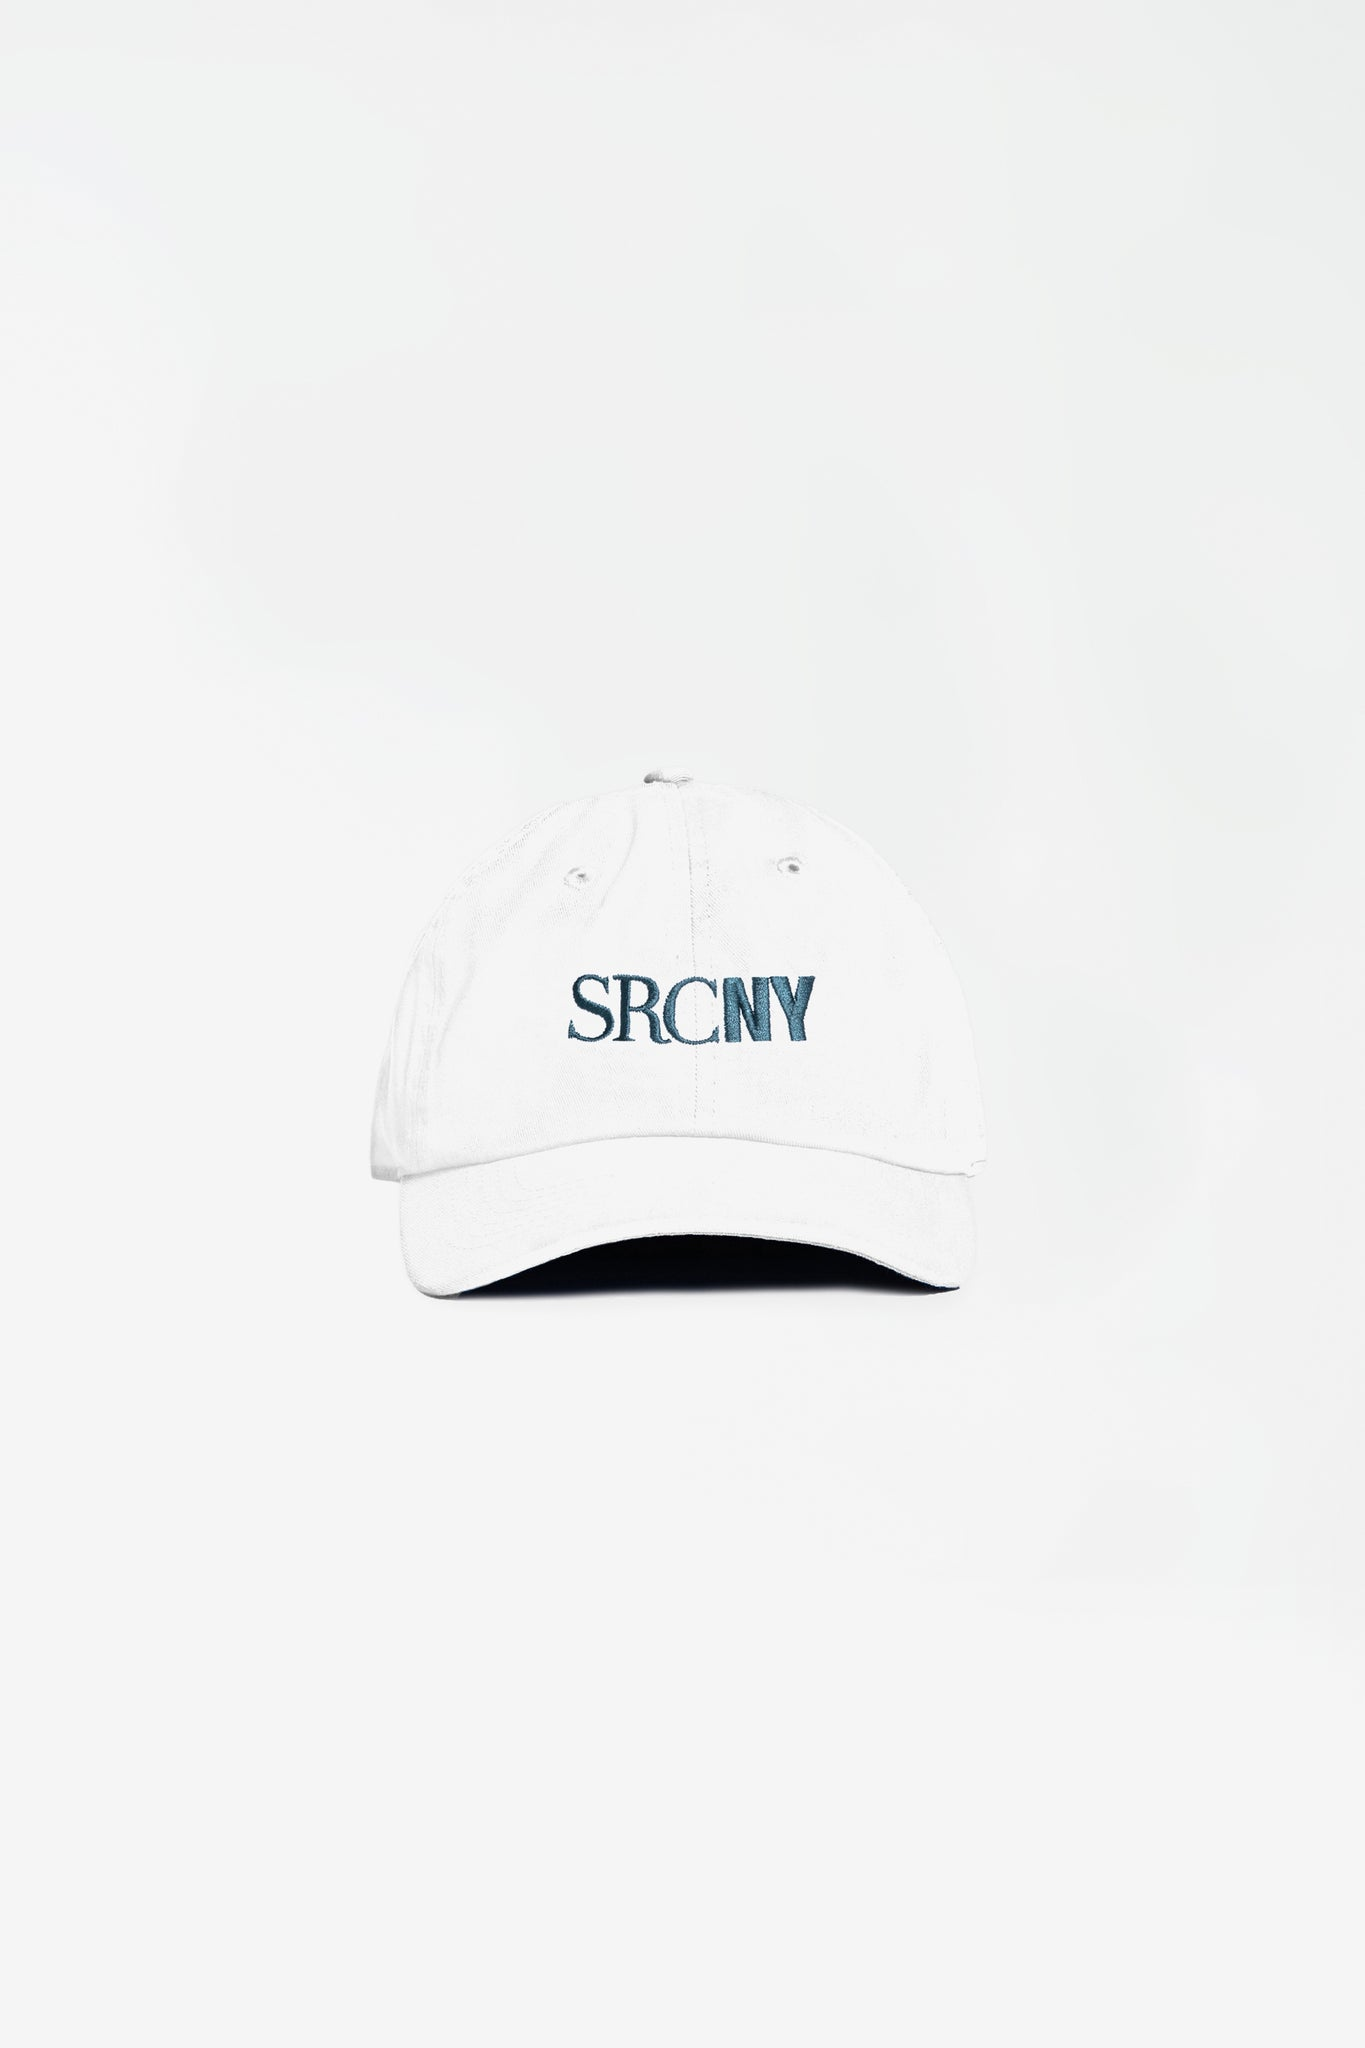 SCRNY Hat white/navy embroidery